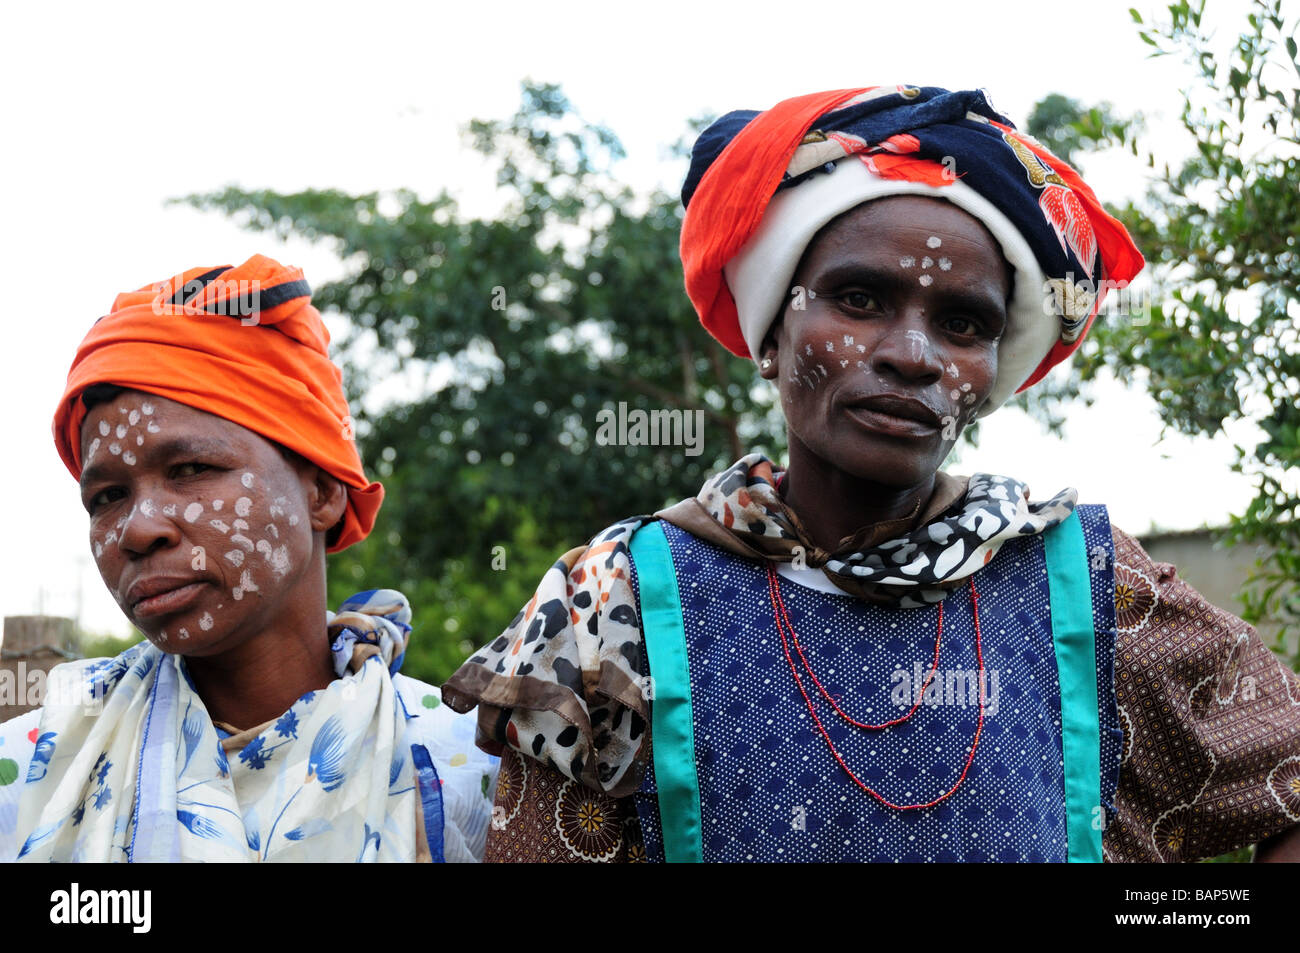 Two tribal  South African women in traditional dress and painted faces in a Township Swellendam South Africa - Stock Image